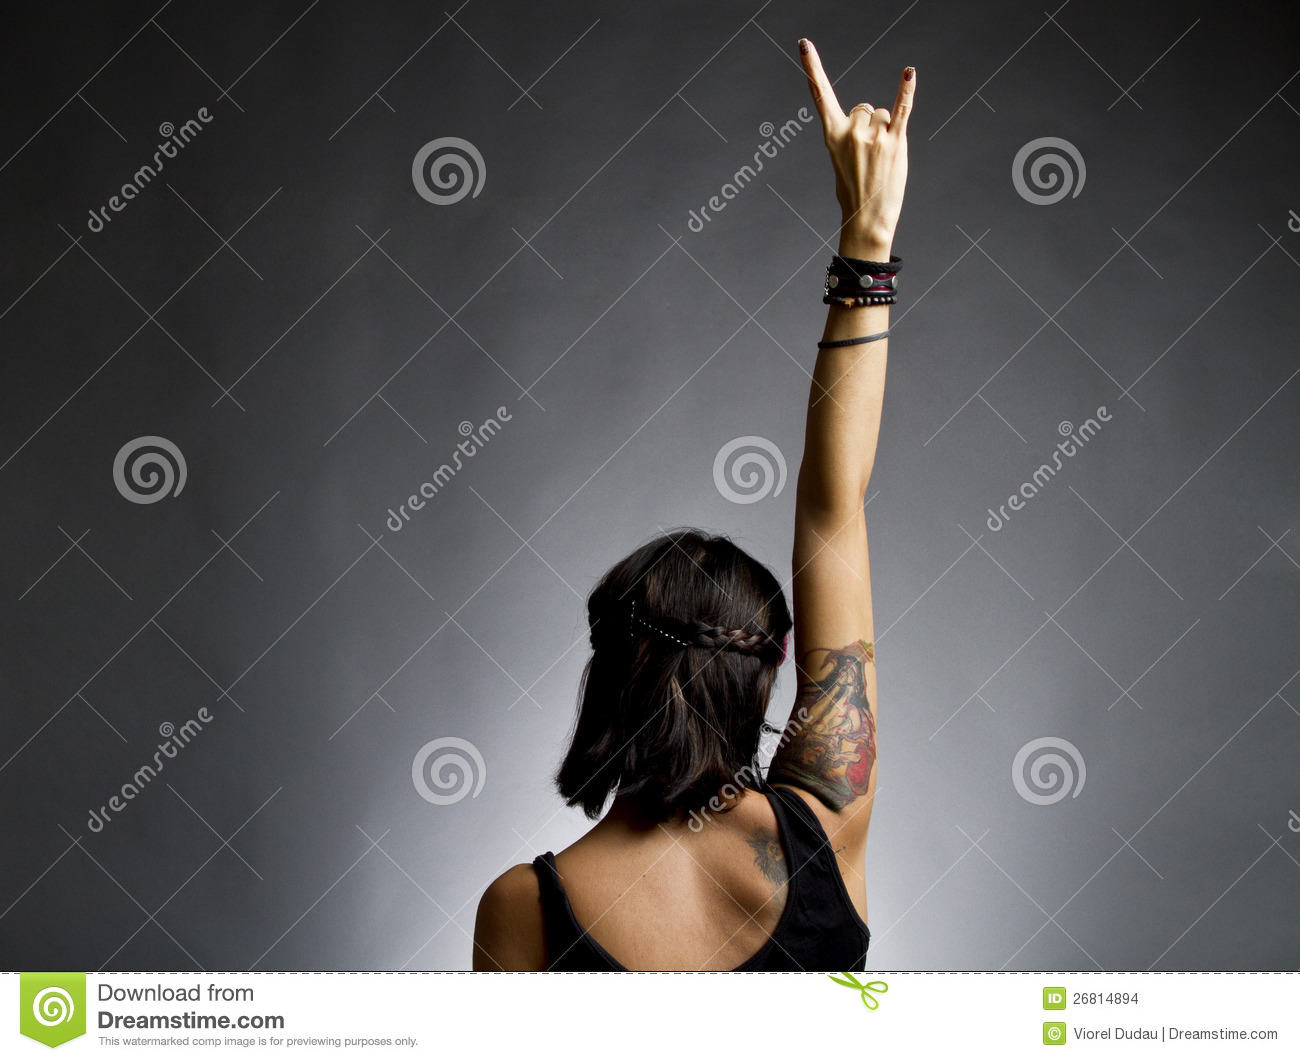 Female rocker with arm in air